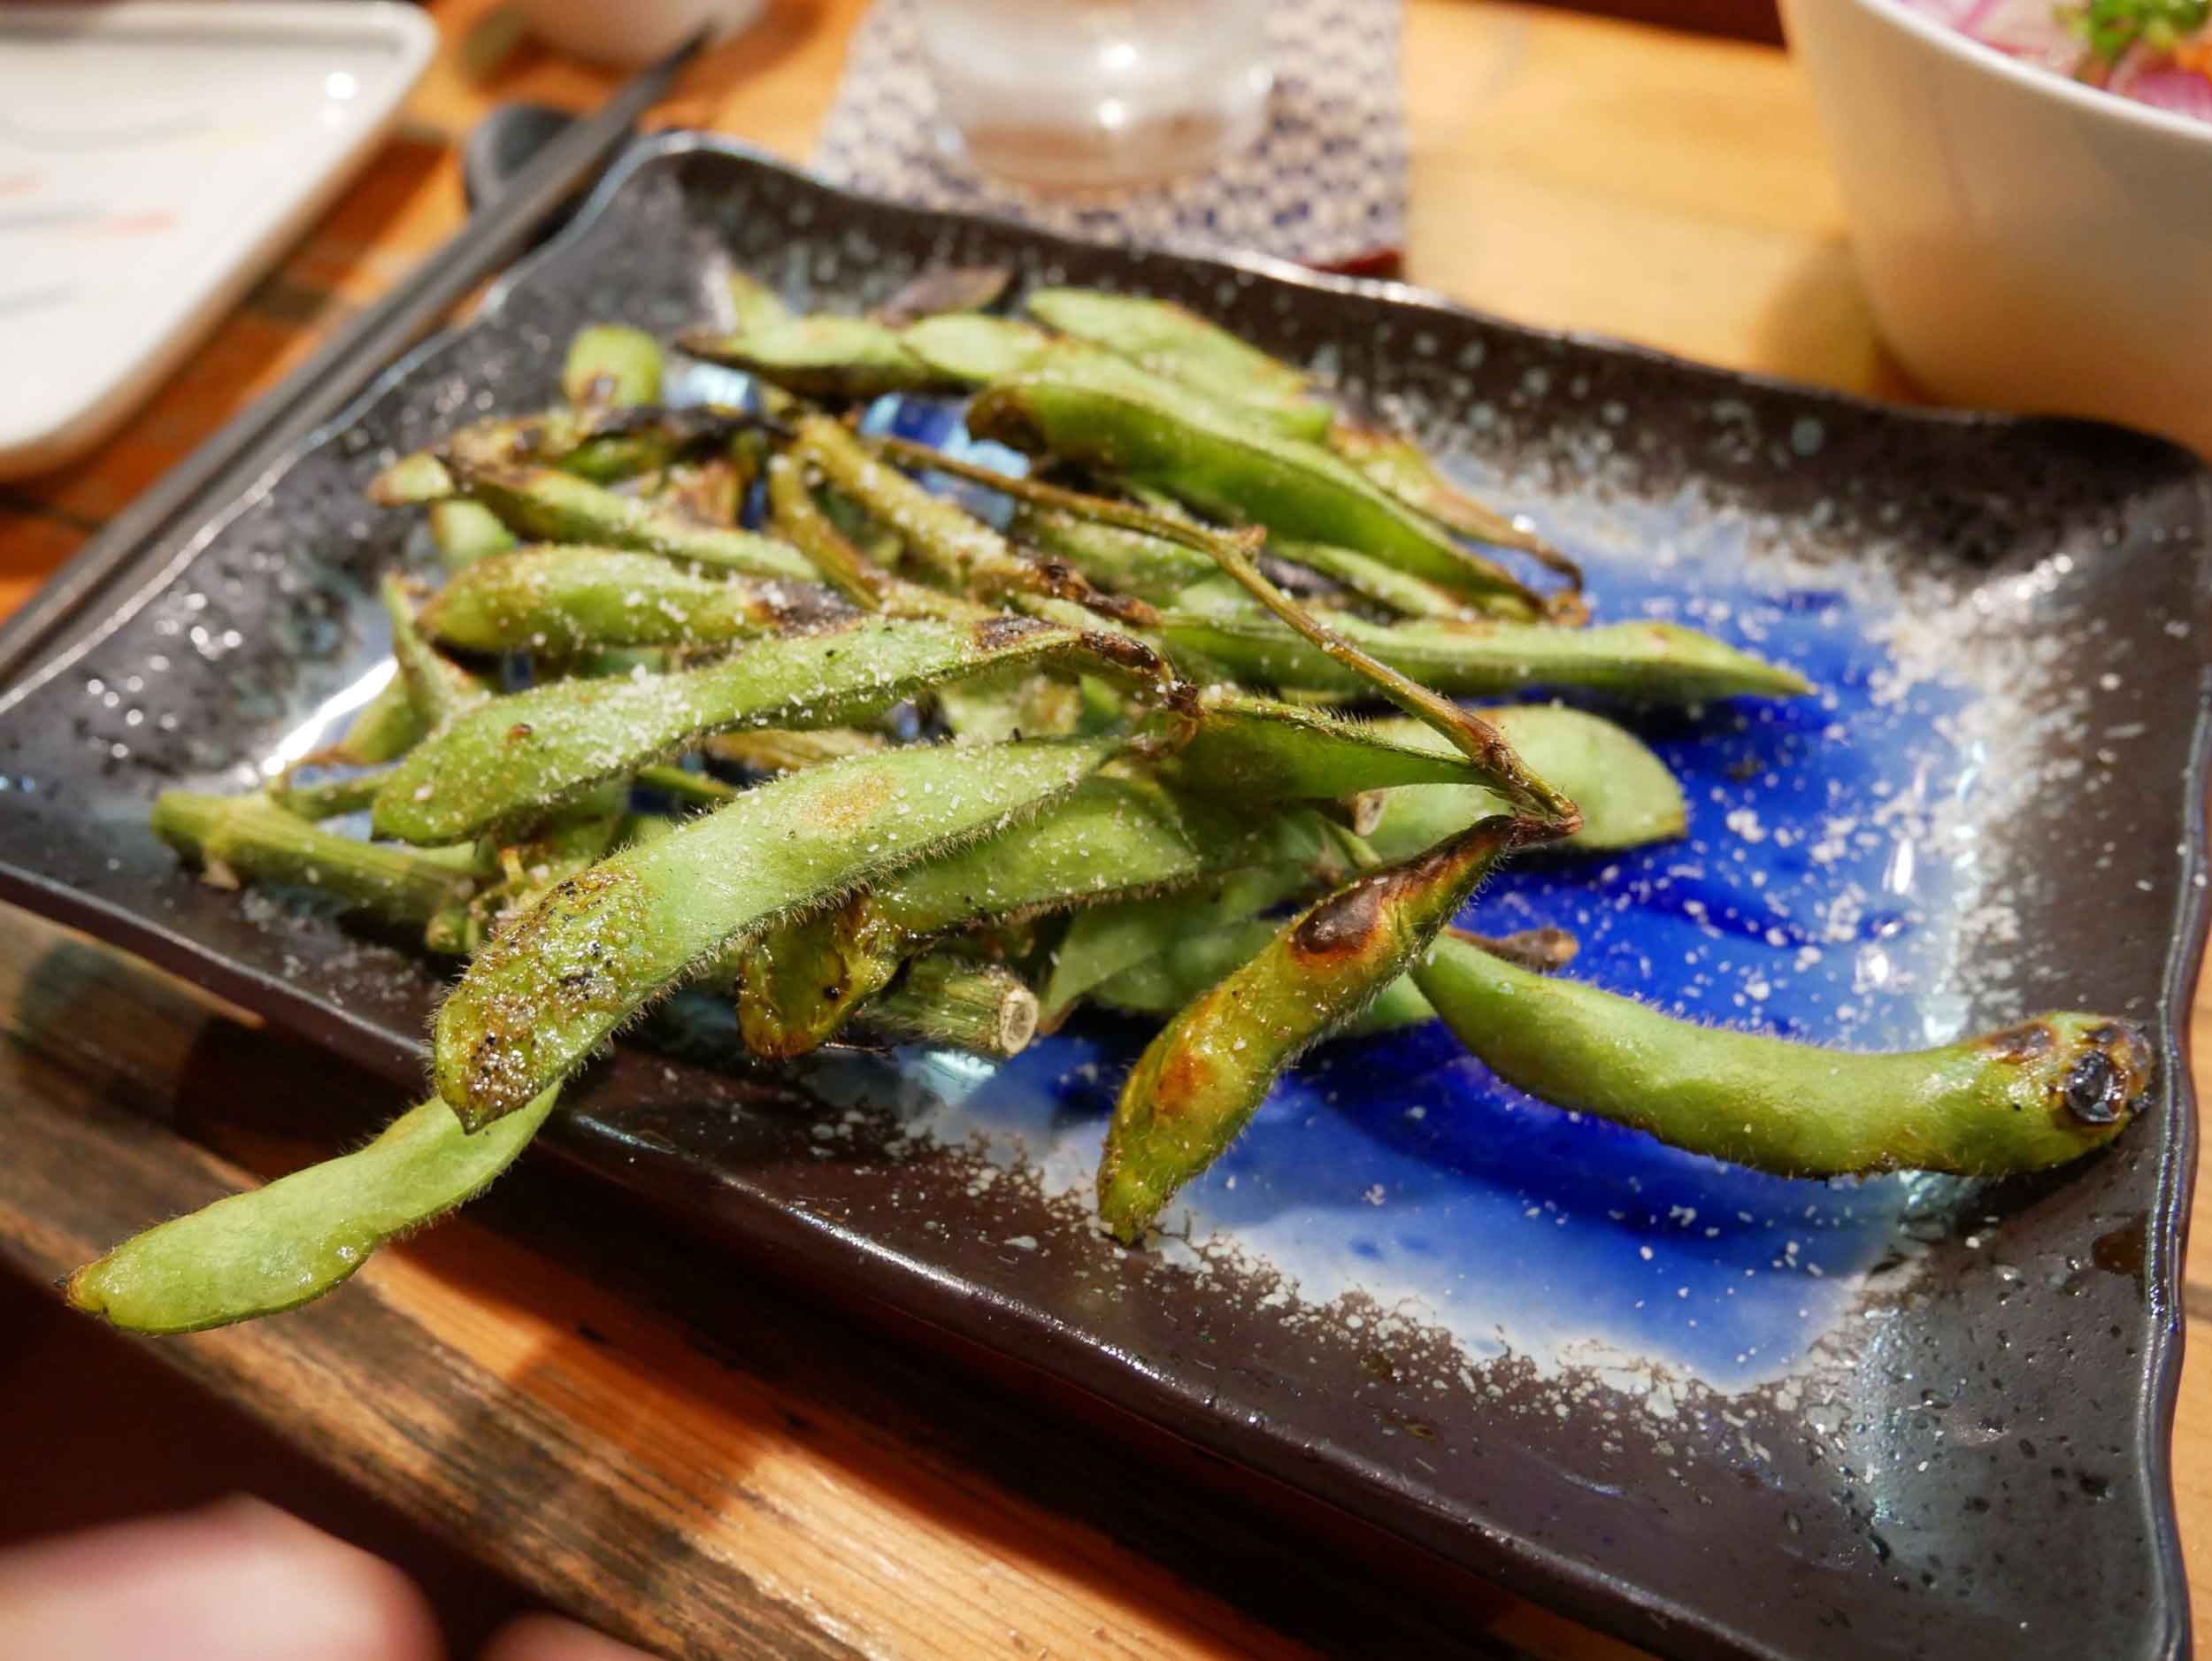 Charcoal blistered edamame to start.